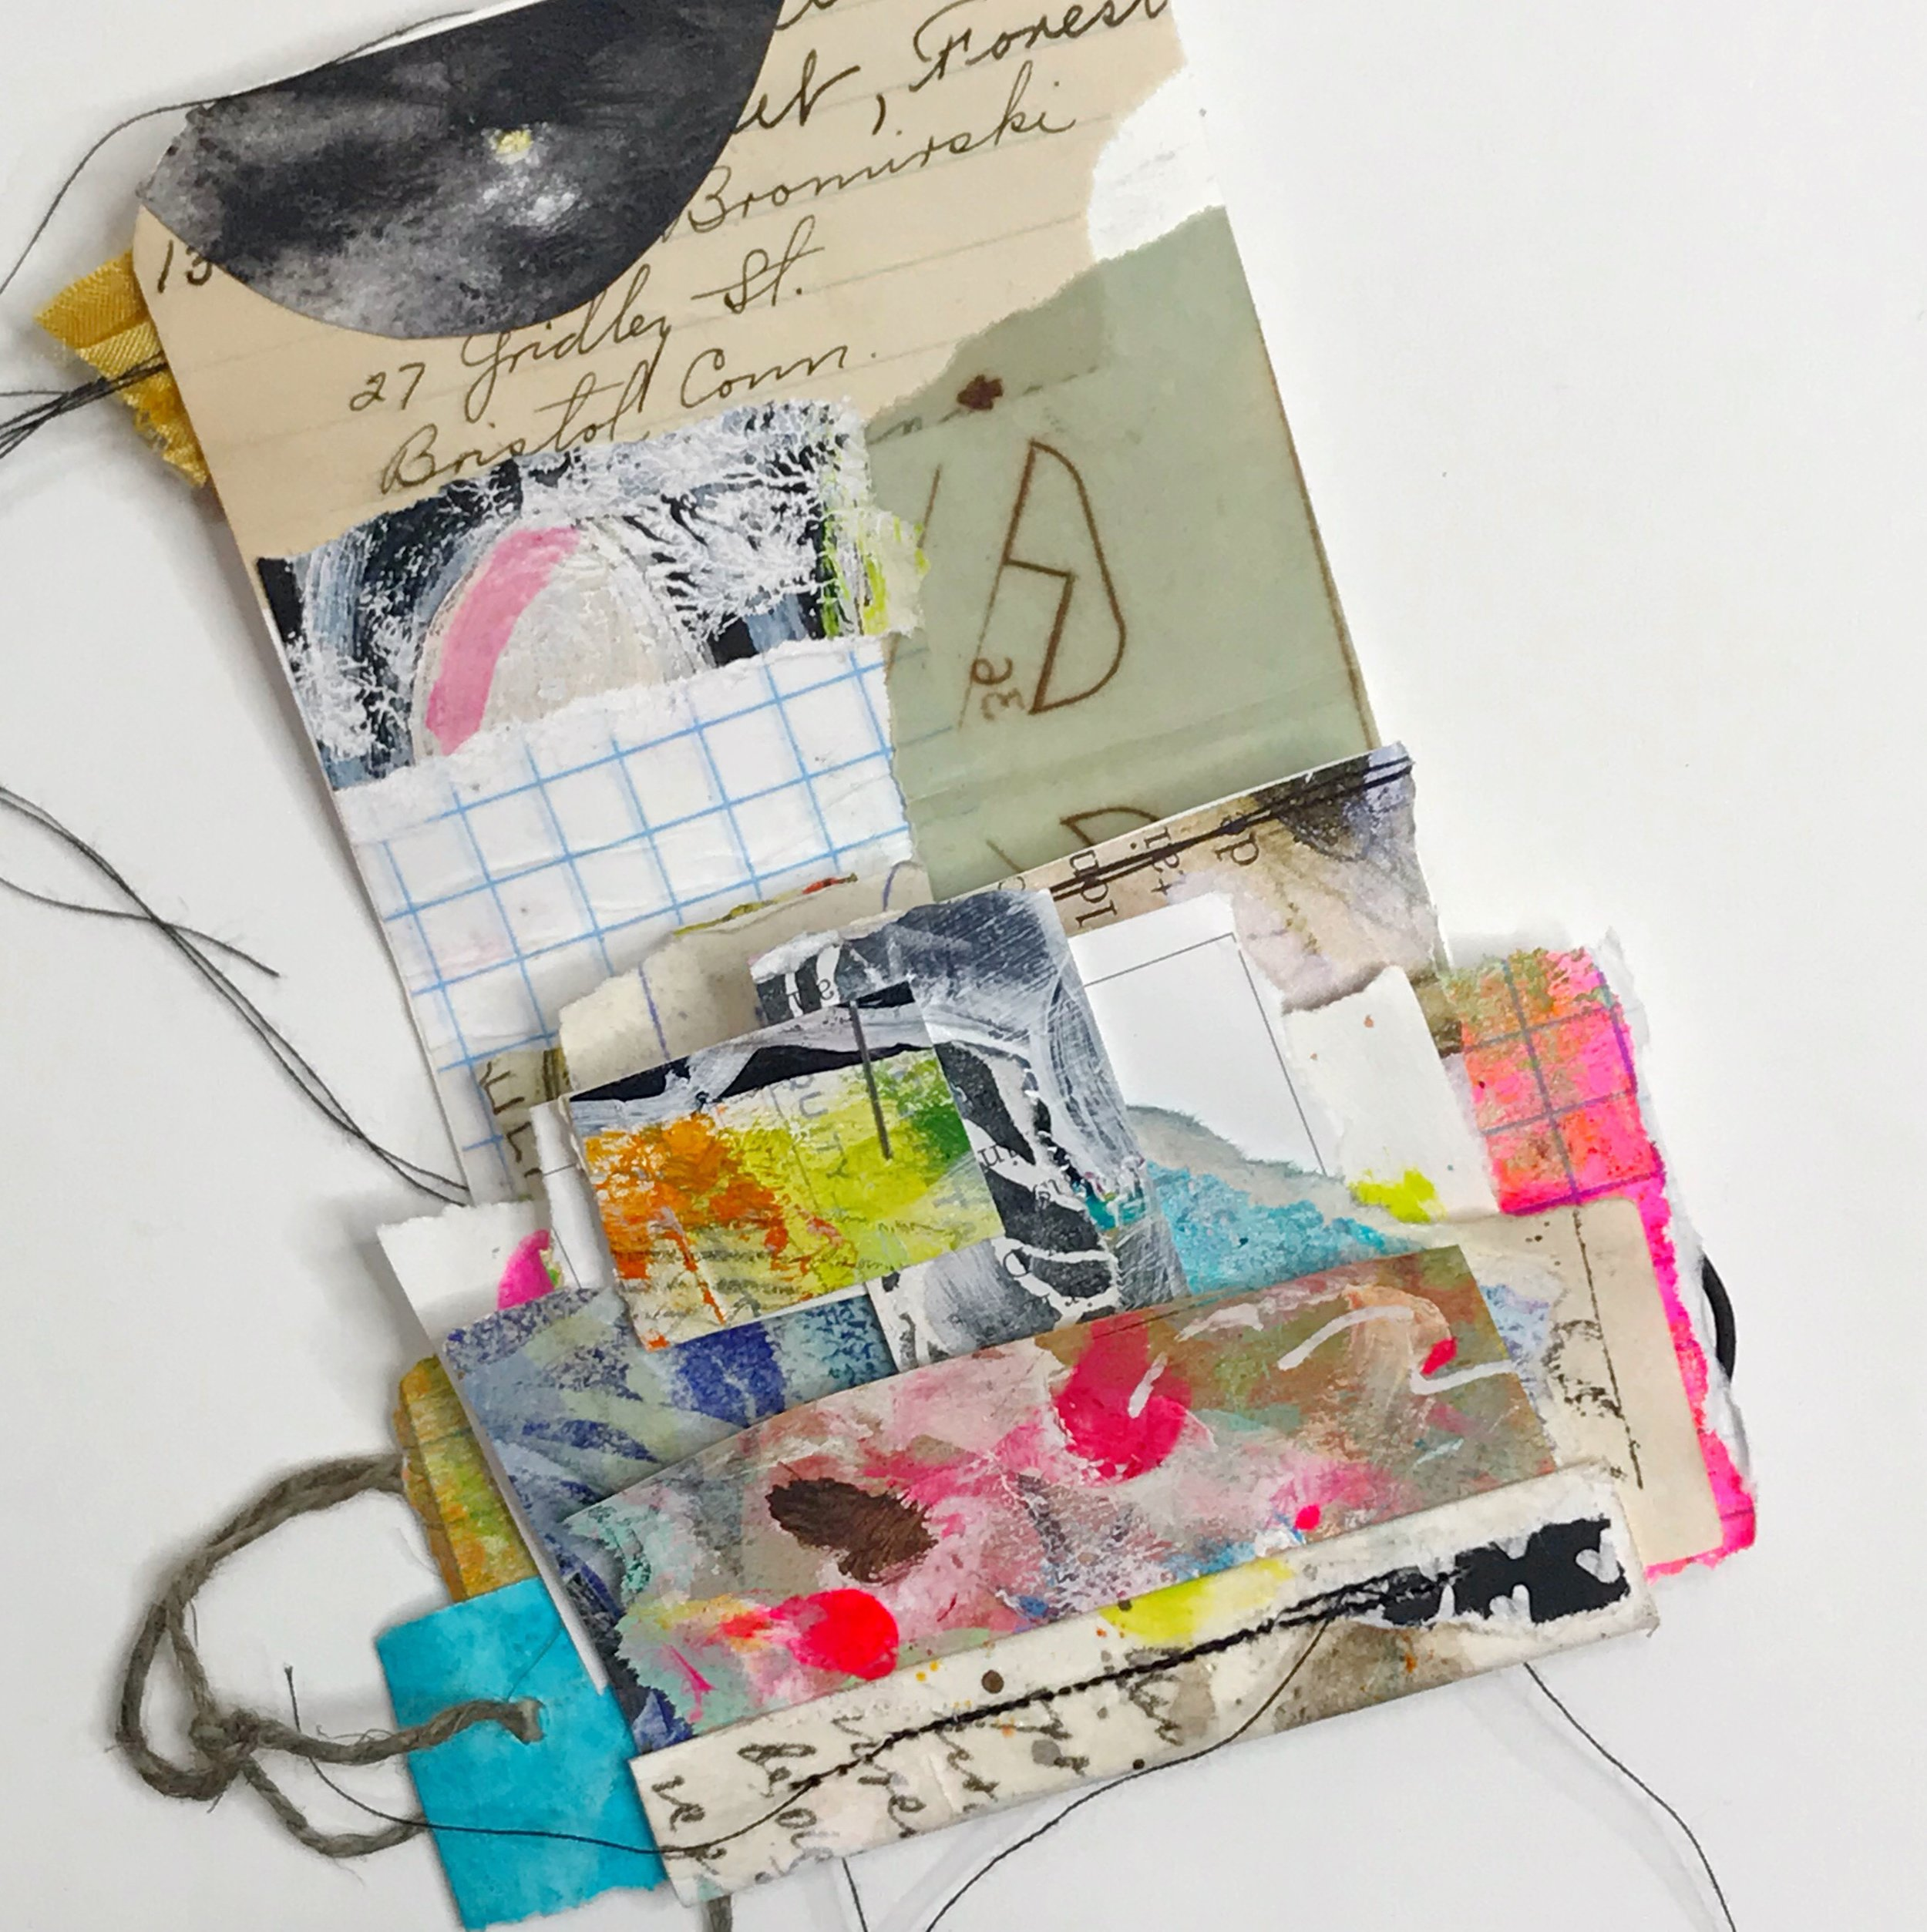 Mixed media art by Roben-Marie Smith #robenmarie #robenmariesmith #collageart #collage #minibooks #minijournals #scrapsampler #techsavvyartist #the100dayproject #100daysofworkingsmall